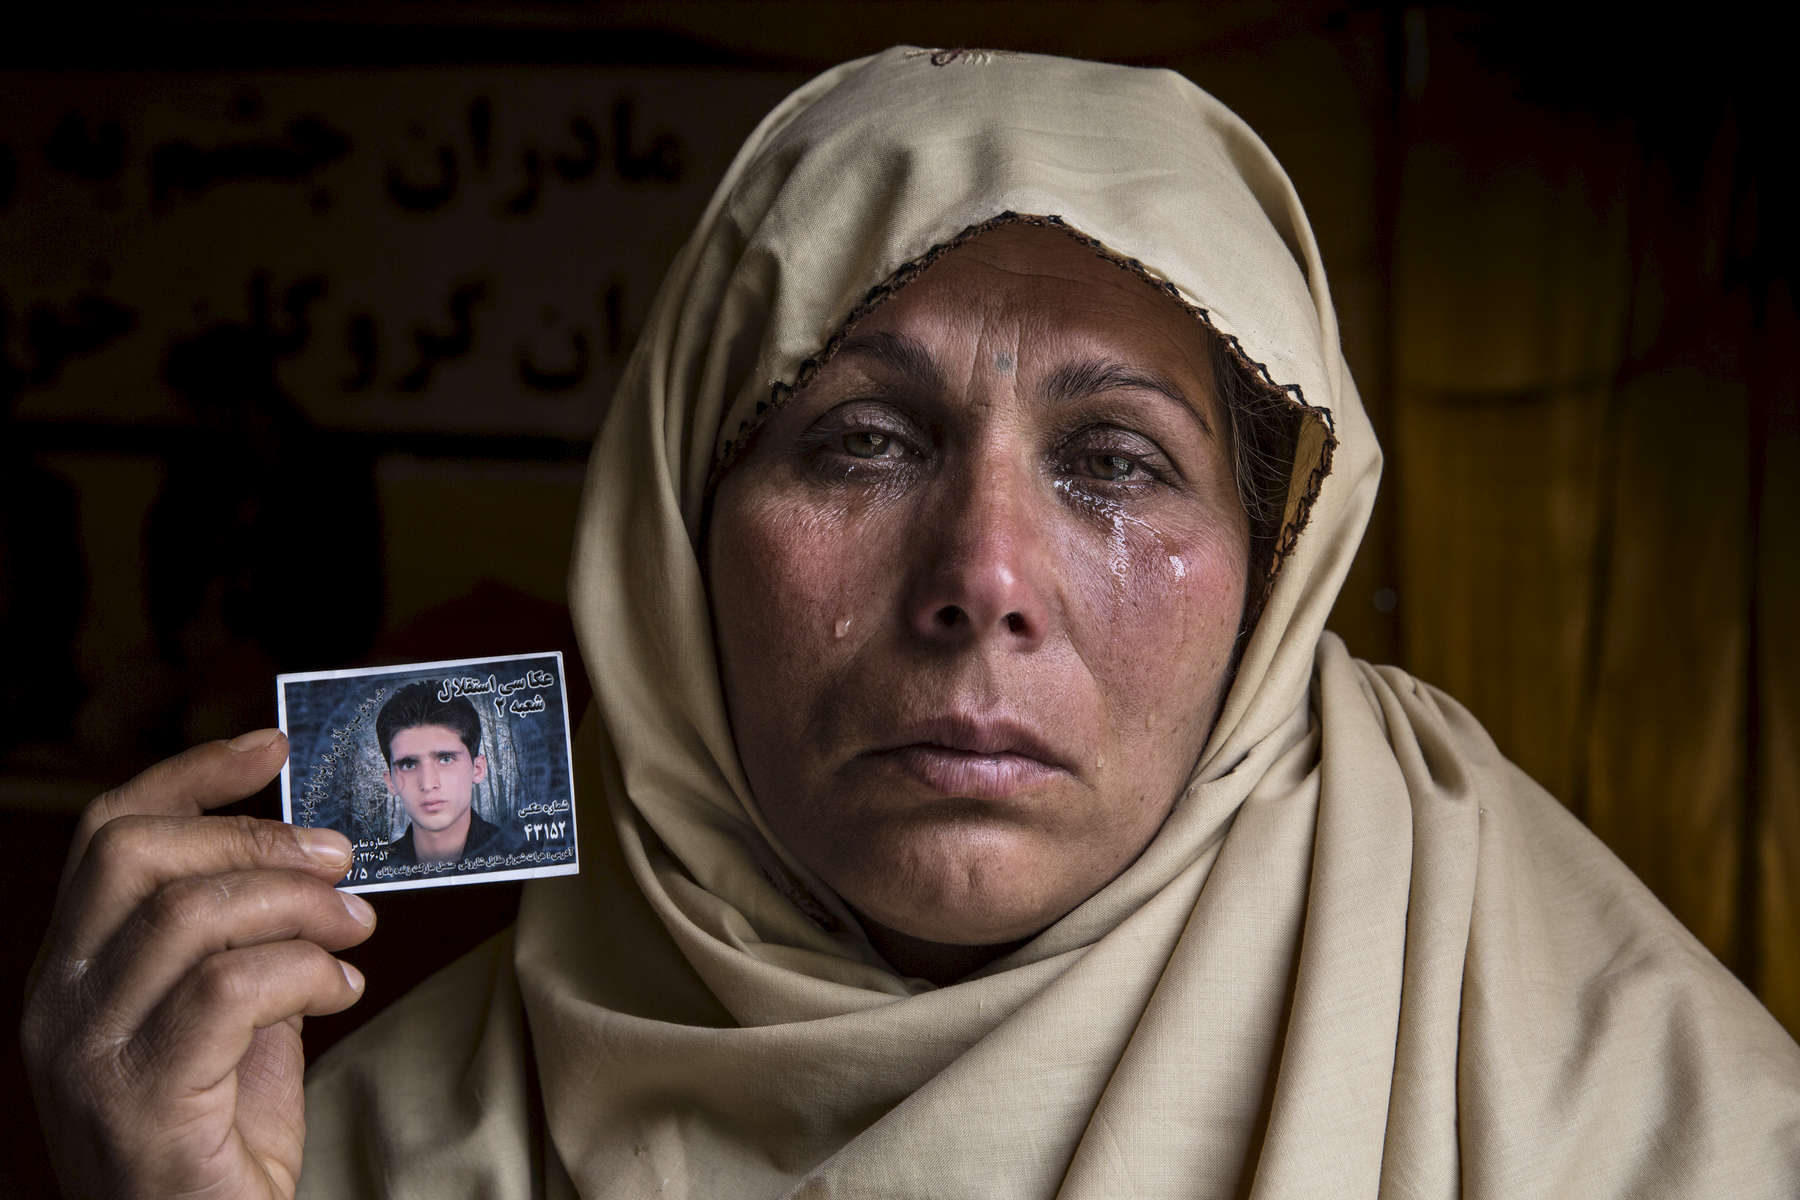 KABUL, AFGHANISTAN - April 18, 2015: Bibi Aisha cries holding a photo of her son, Yousef, 22, who was kidnapped and after many weeks with no answer she worries he will be killed.The Hazara community is asking for the Afghan government to help in finding the abducted Hazara. In late February gunmen seized 31 Hazara in Zabul  province in southern Afghanistan. The men were traveling from Iran by bus when they were attacked.April 18, 2015(Photo by Paula Bronstein/ for the Wall Street Journal)